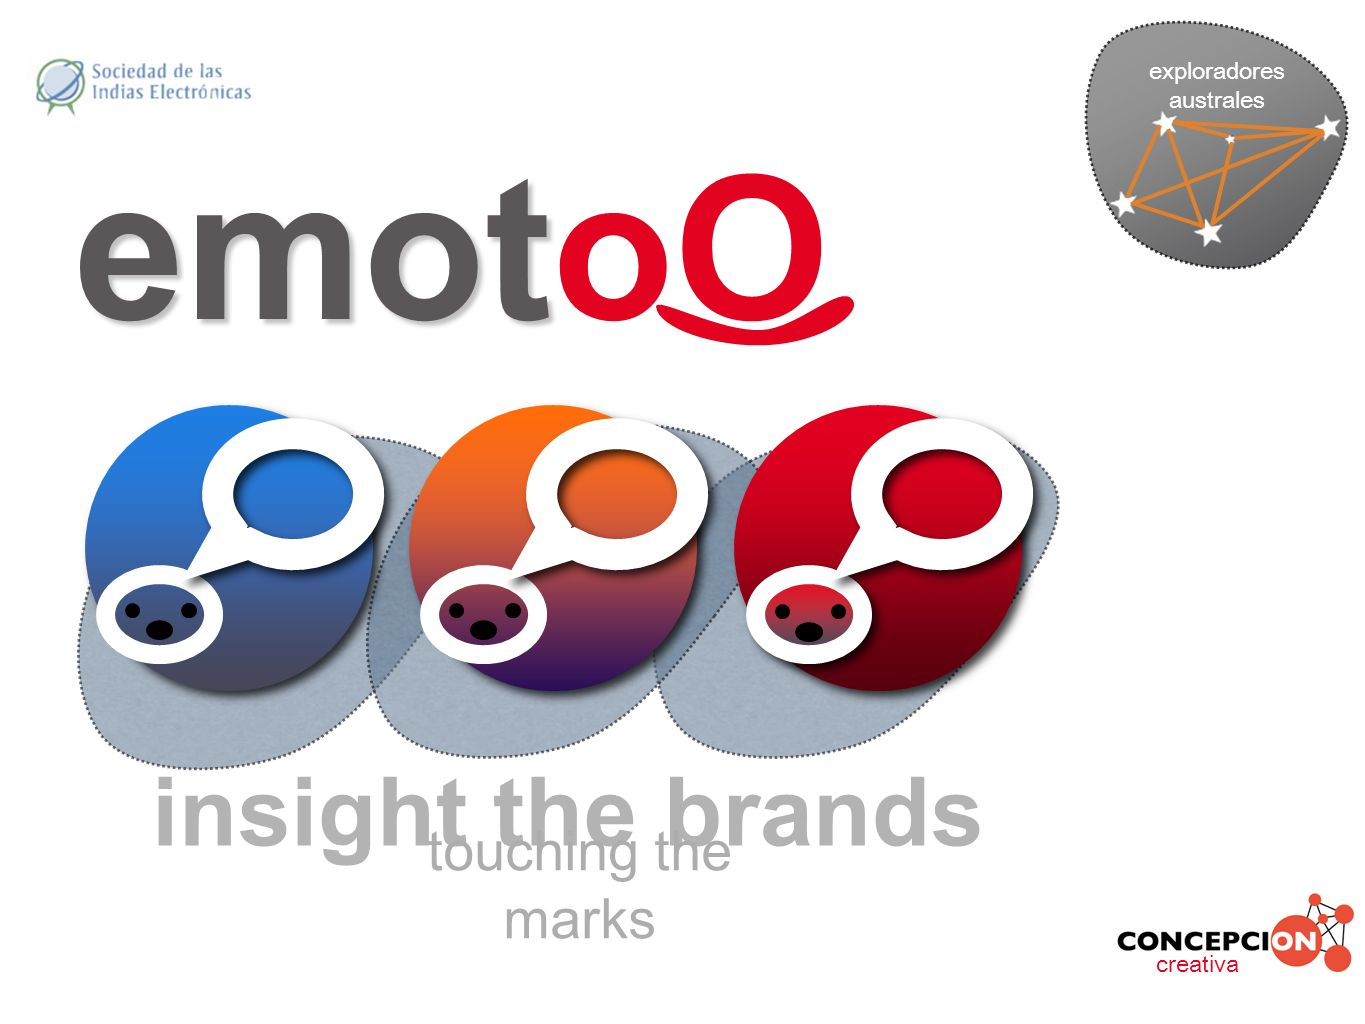 insight the brands touching the marks creativa exploradores australes emot emotoO